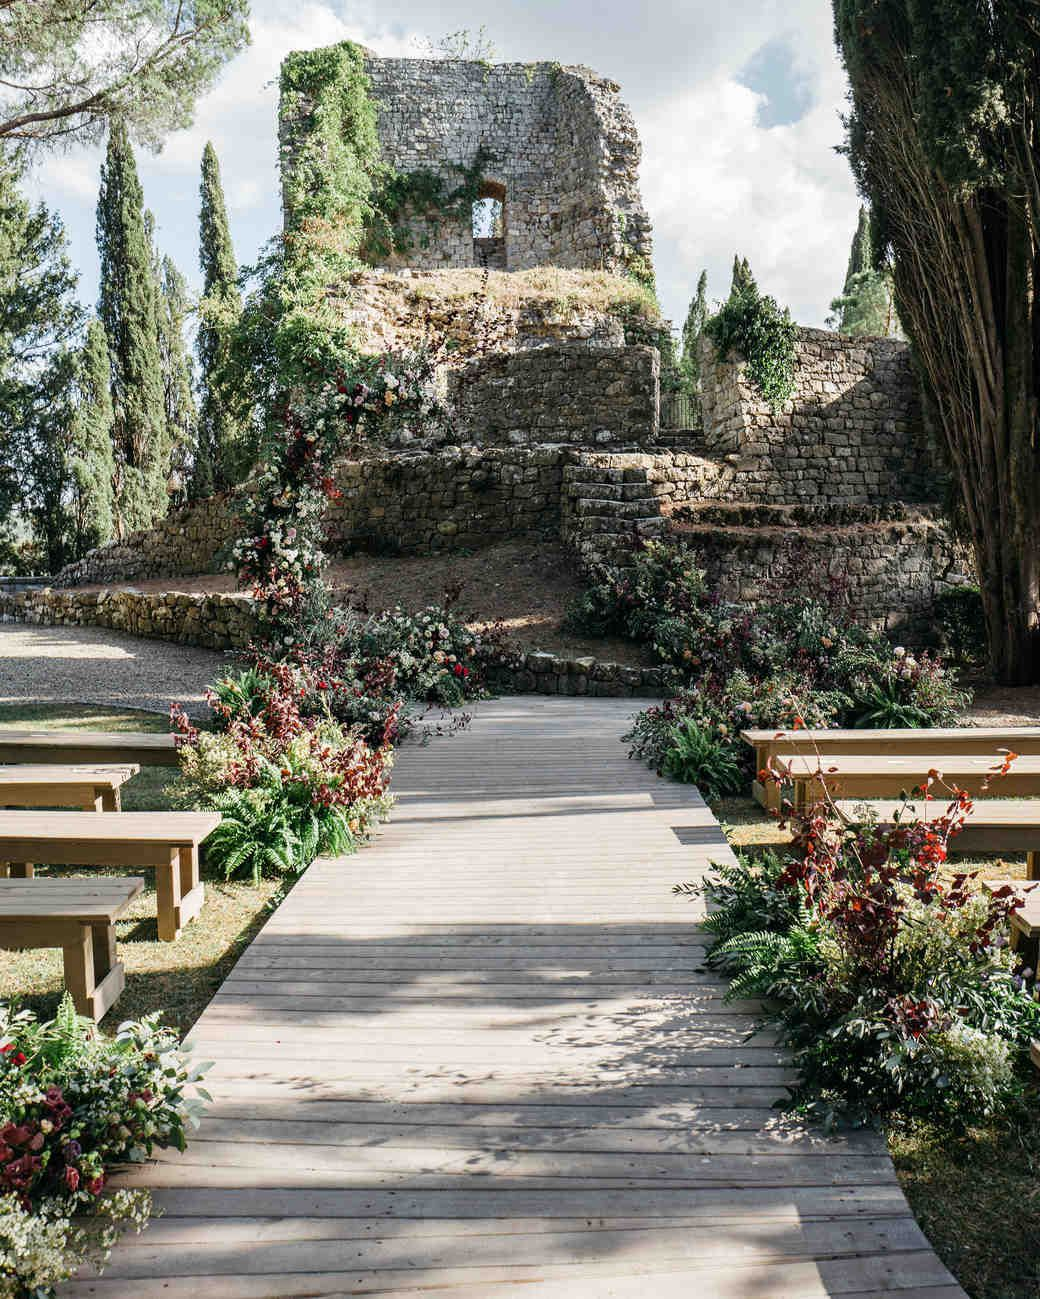 Real Weddings In Tuscany: Ancient Castle Ruins Served As The Backdrop For This